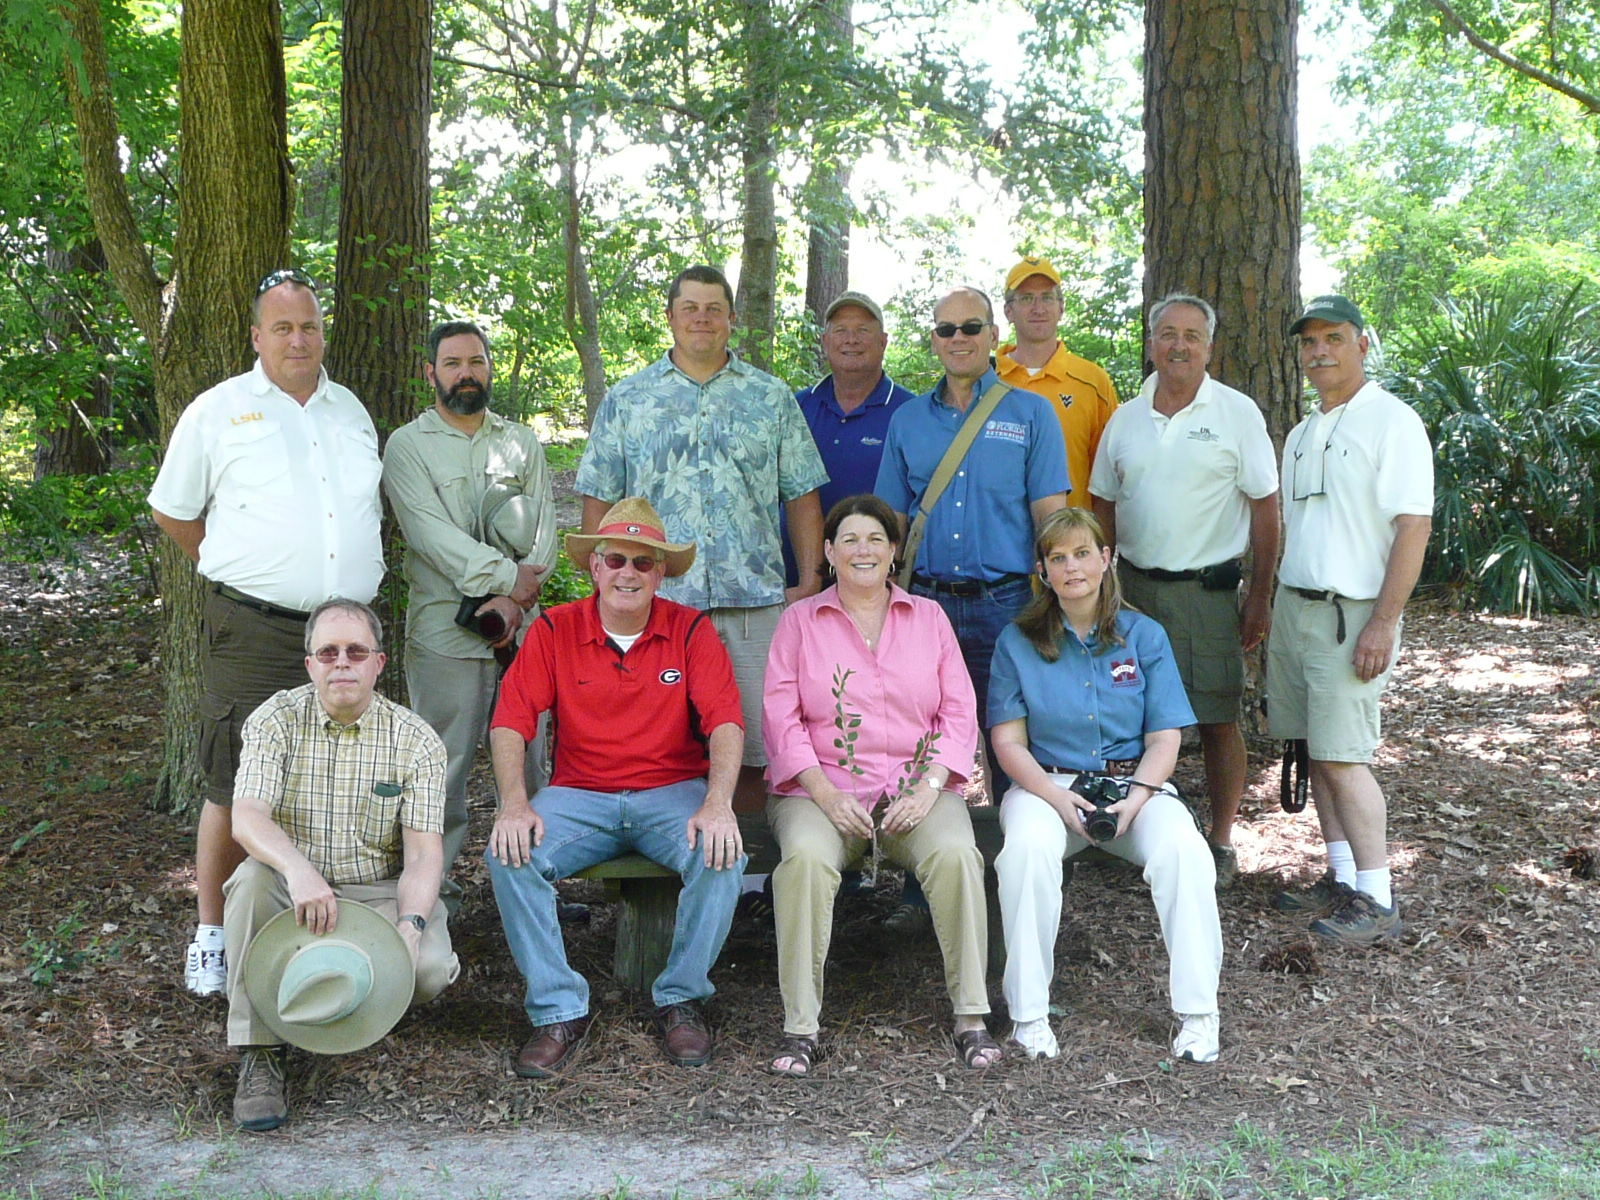 SERA-IEG Group in 2010 in Georgia